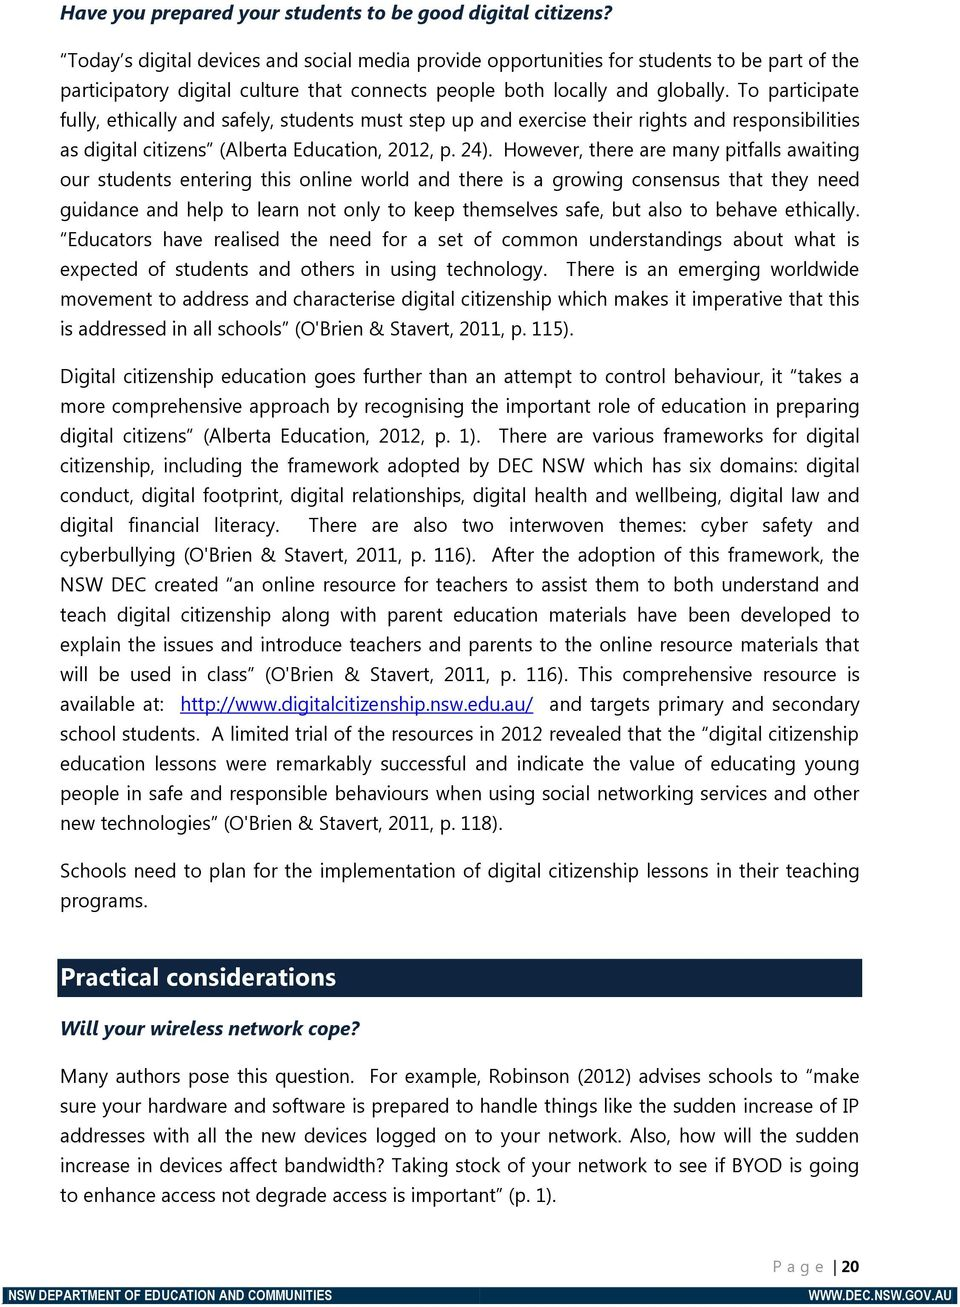 To participate fully, ethically and safely, students must step up and exercise their rights and responsibilities as digital citizens (Alberta Education, 2012, p. 24).